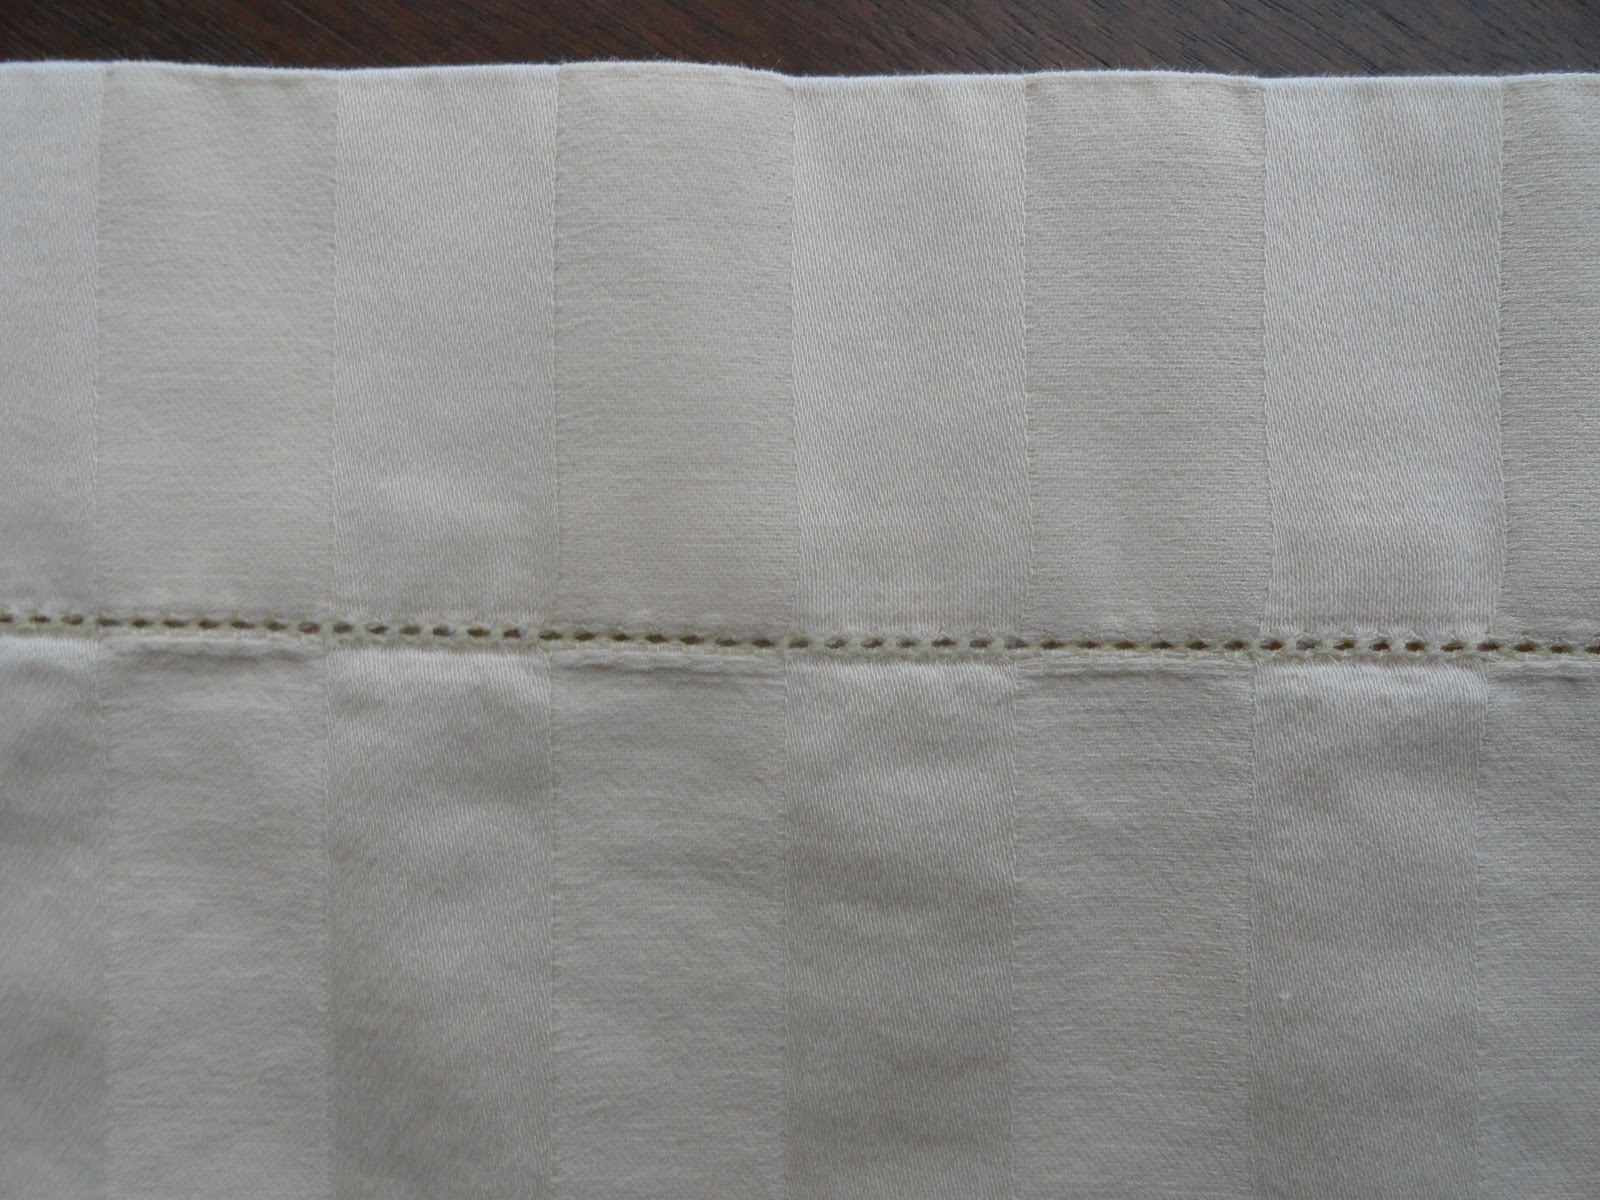 Jul 25,  · The hemstitch is commonly used in drawn thread work. While adding a decorative edge to a drawn thread area, it bunches together the remaining threads.